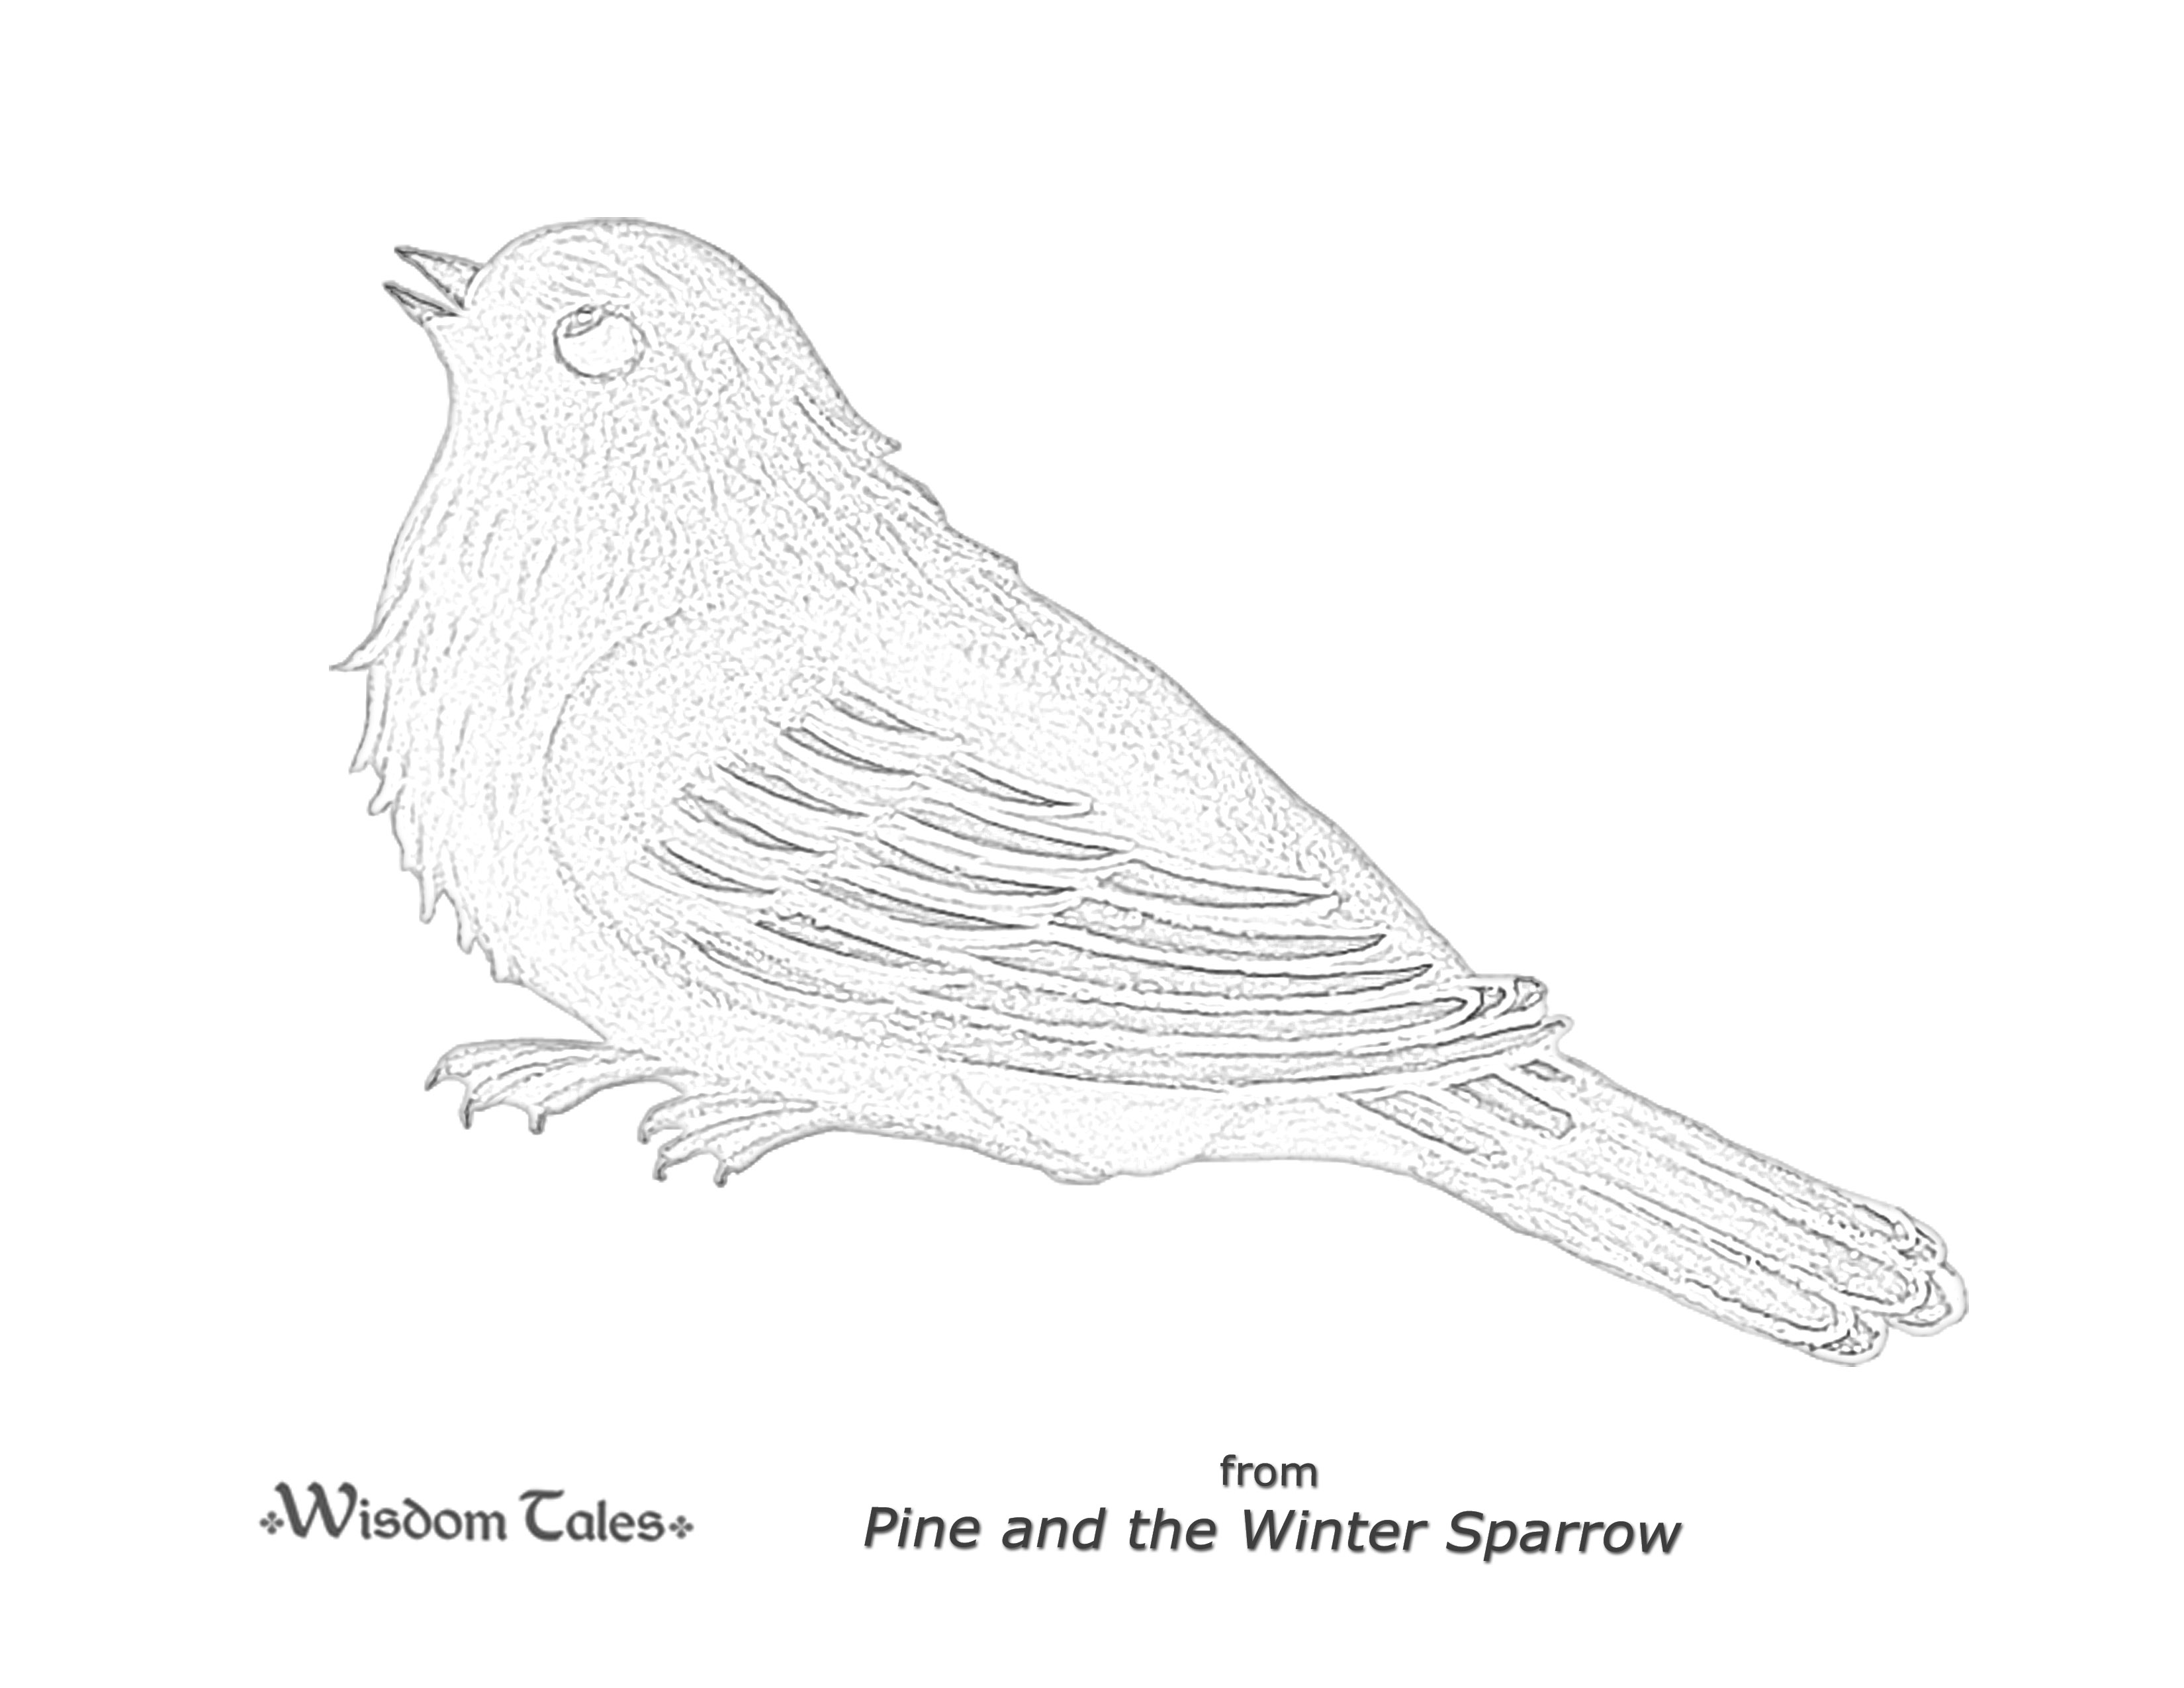 Pine and the Winter Sparrow (ISBN 978-1-937786-33-5) by